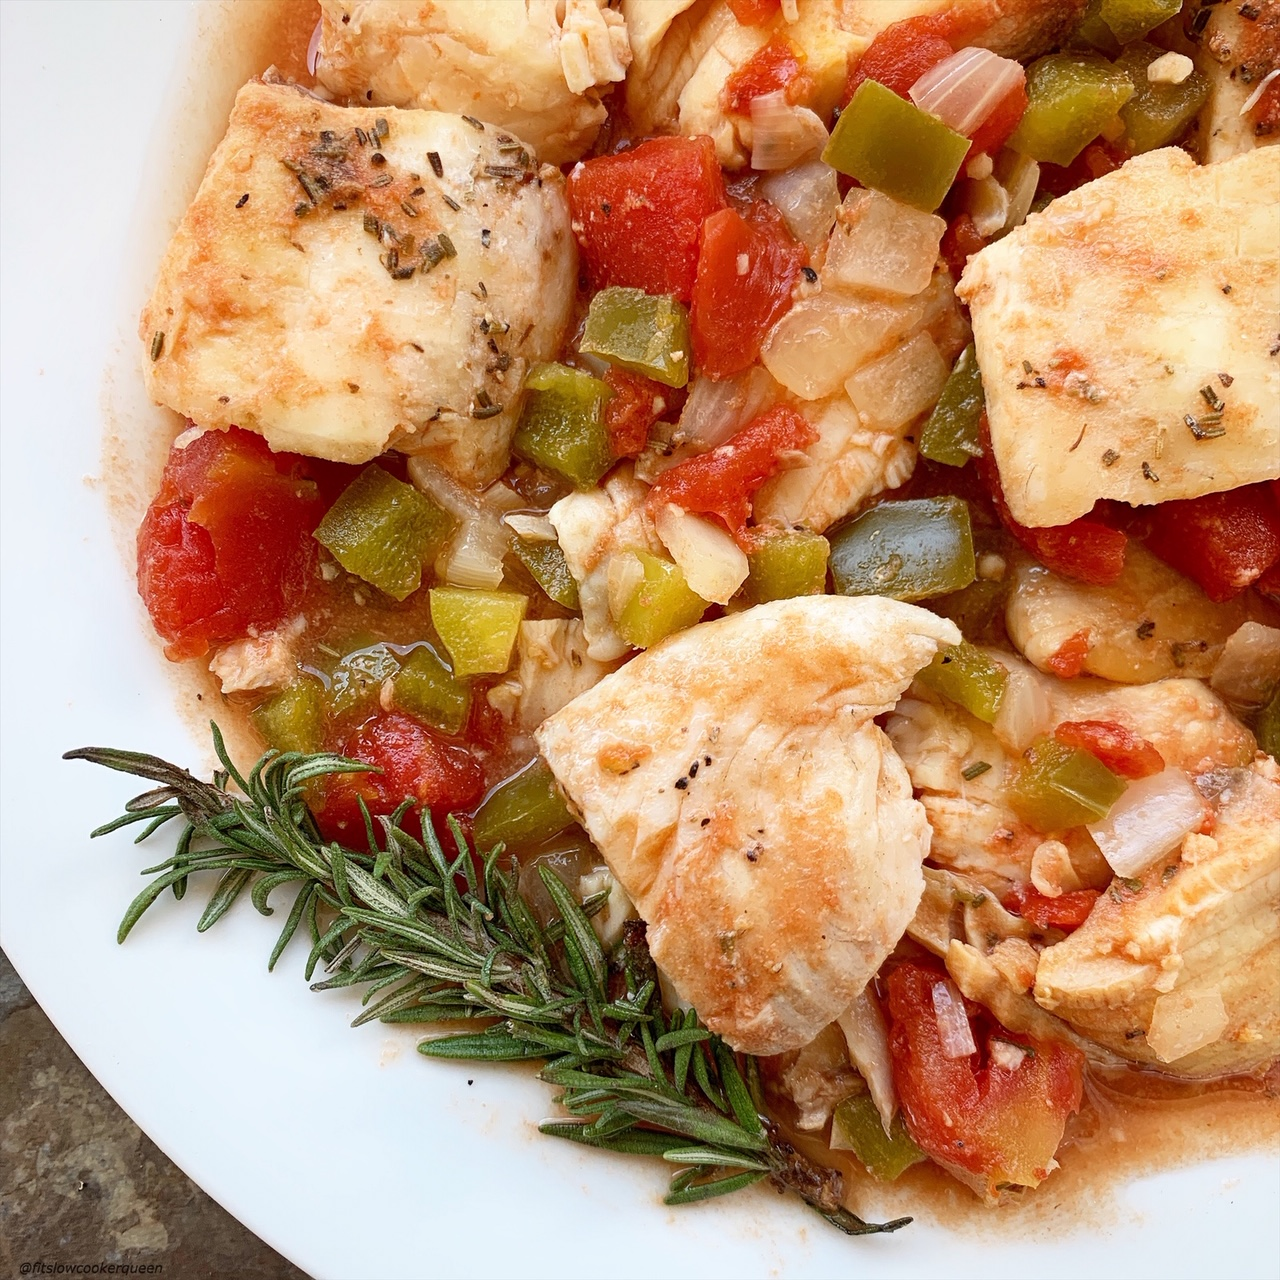 Fish in the slow cooker? Of course. Your favorite fish slow cooks with tomatoes and vegetables in this aneasy low-carb, paleo, and whole30 recipe.